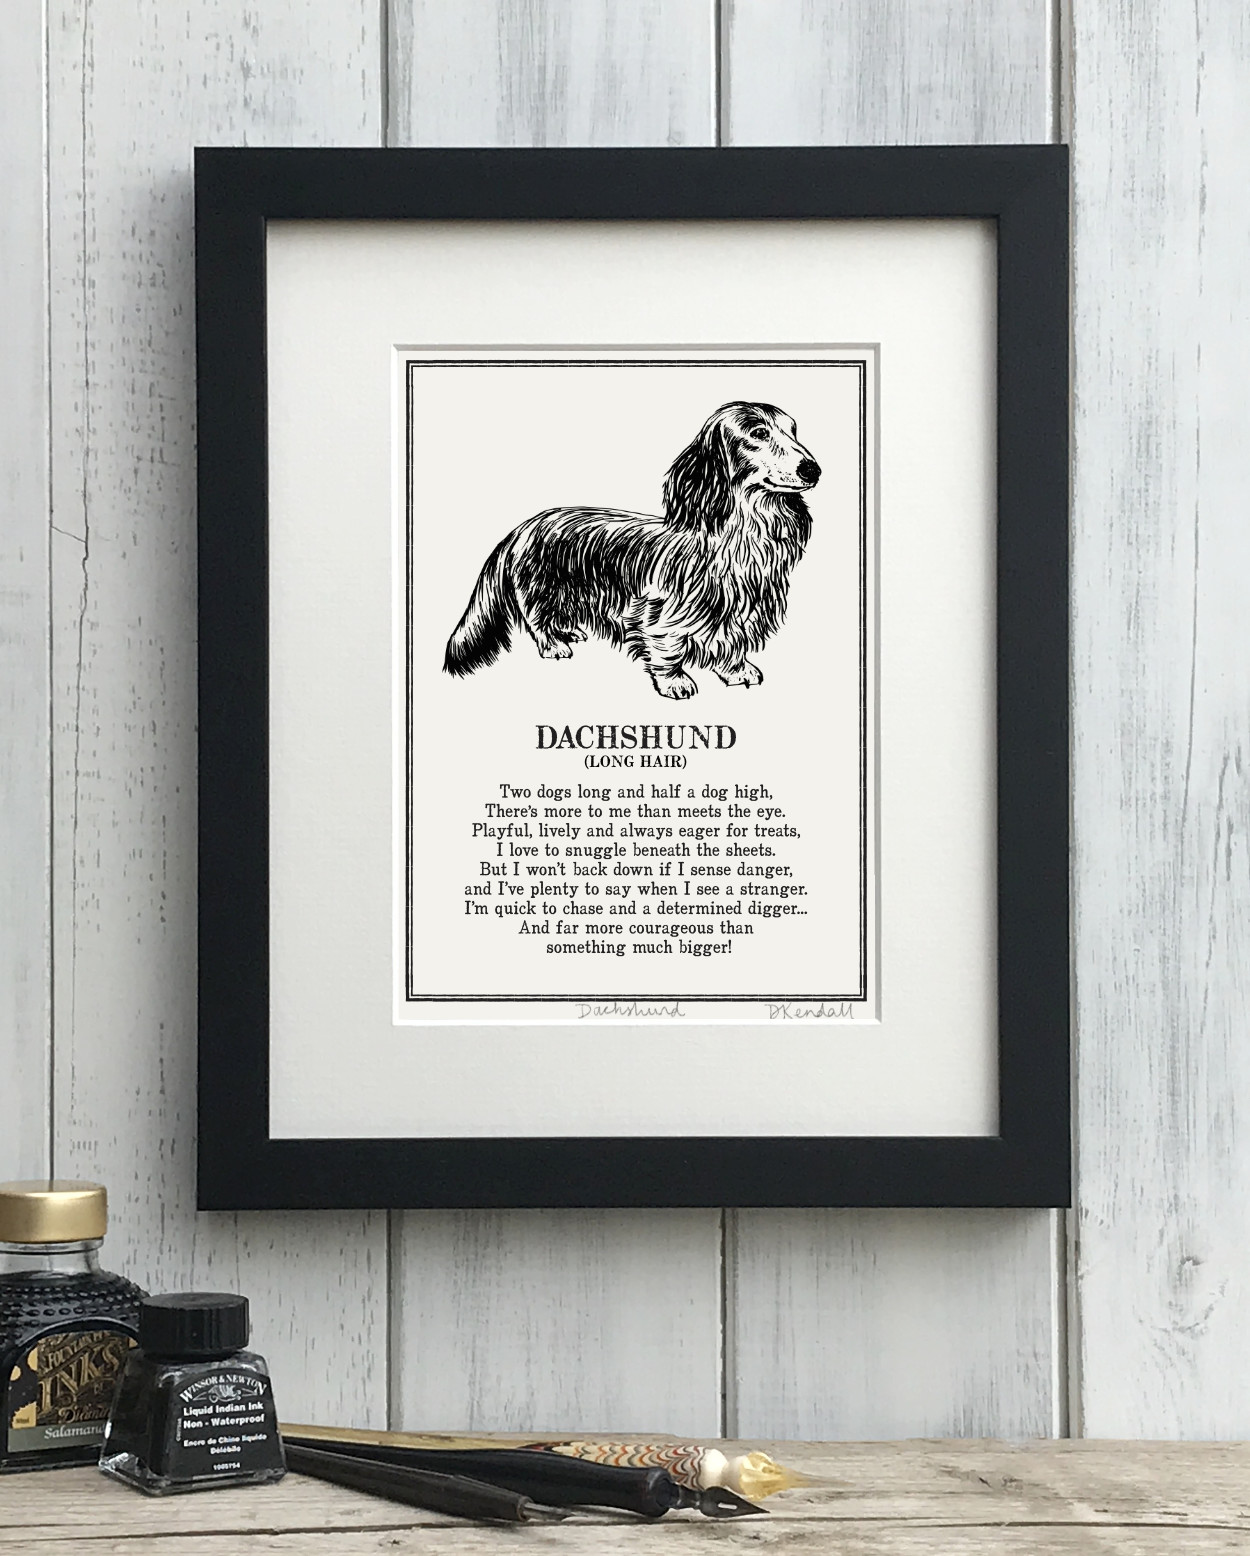 Long Haired Dachshund print illustrated poem by The Enlightened Hound